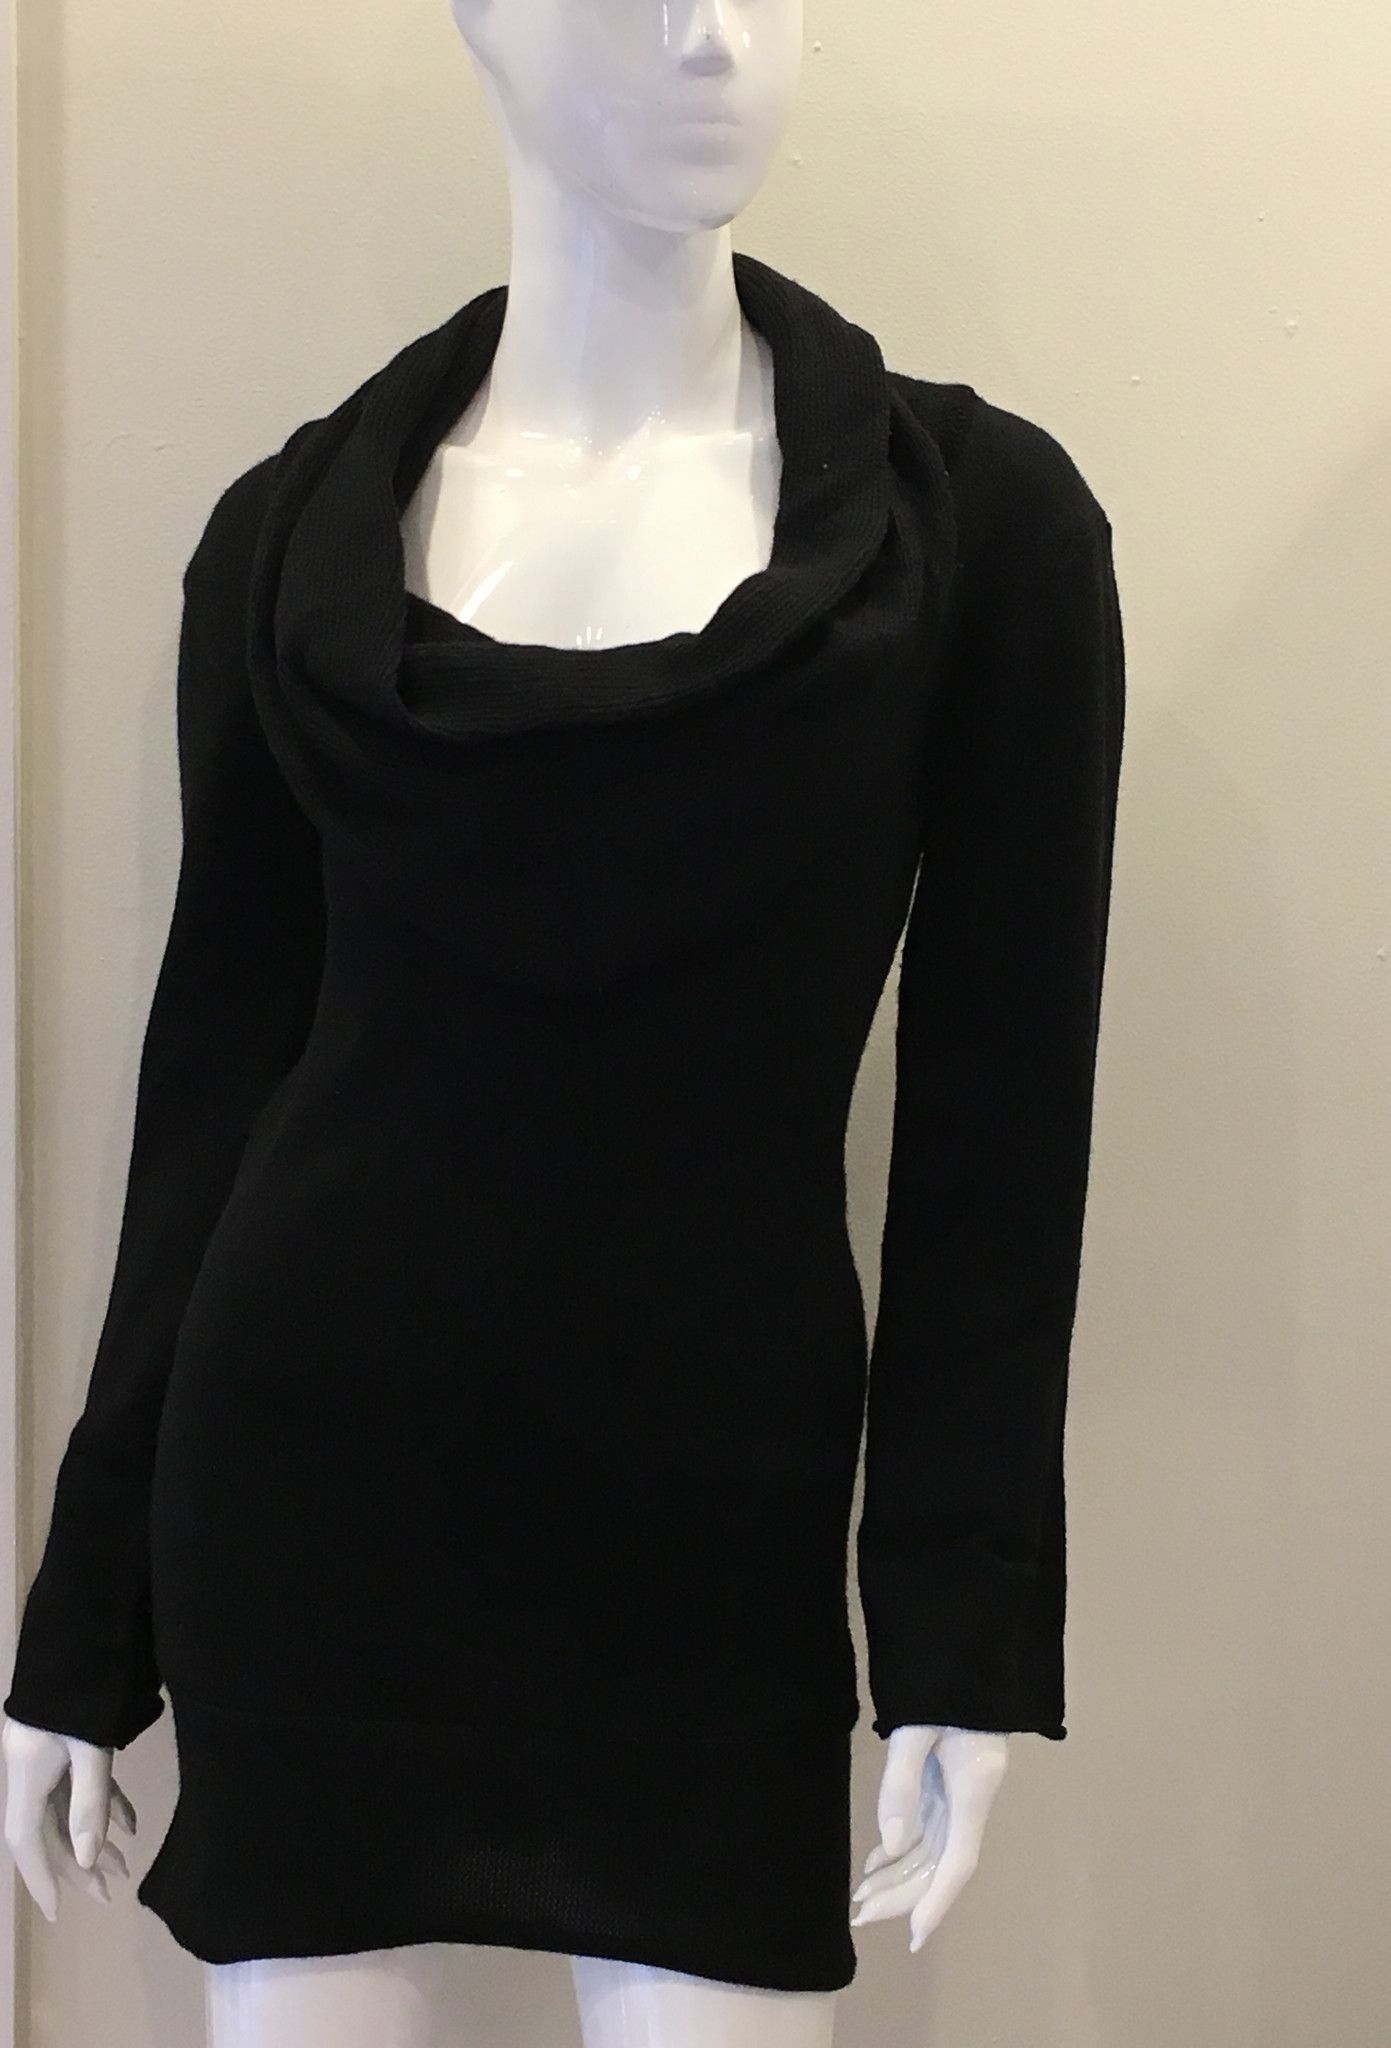 Claudia cashmere cowl neck sweater | Products, Cowls and Cowl neck ...